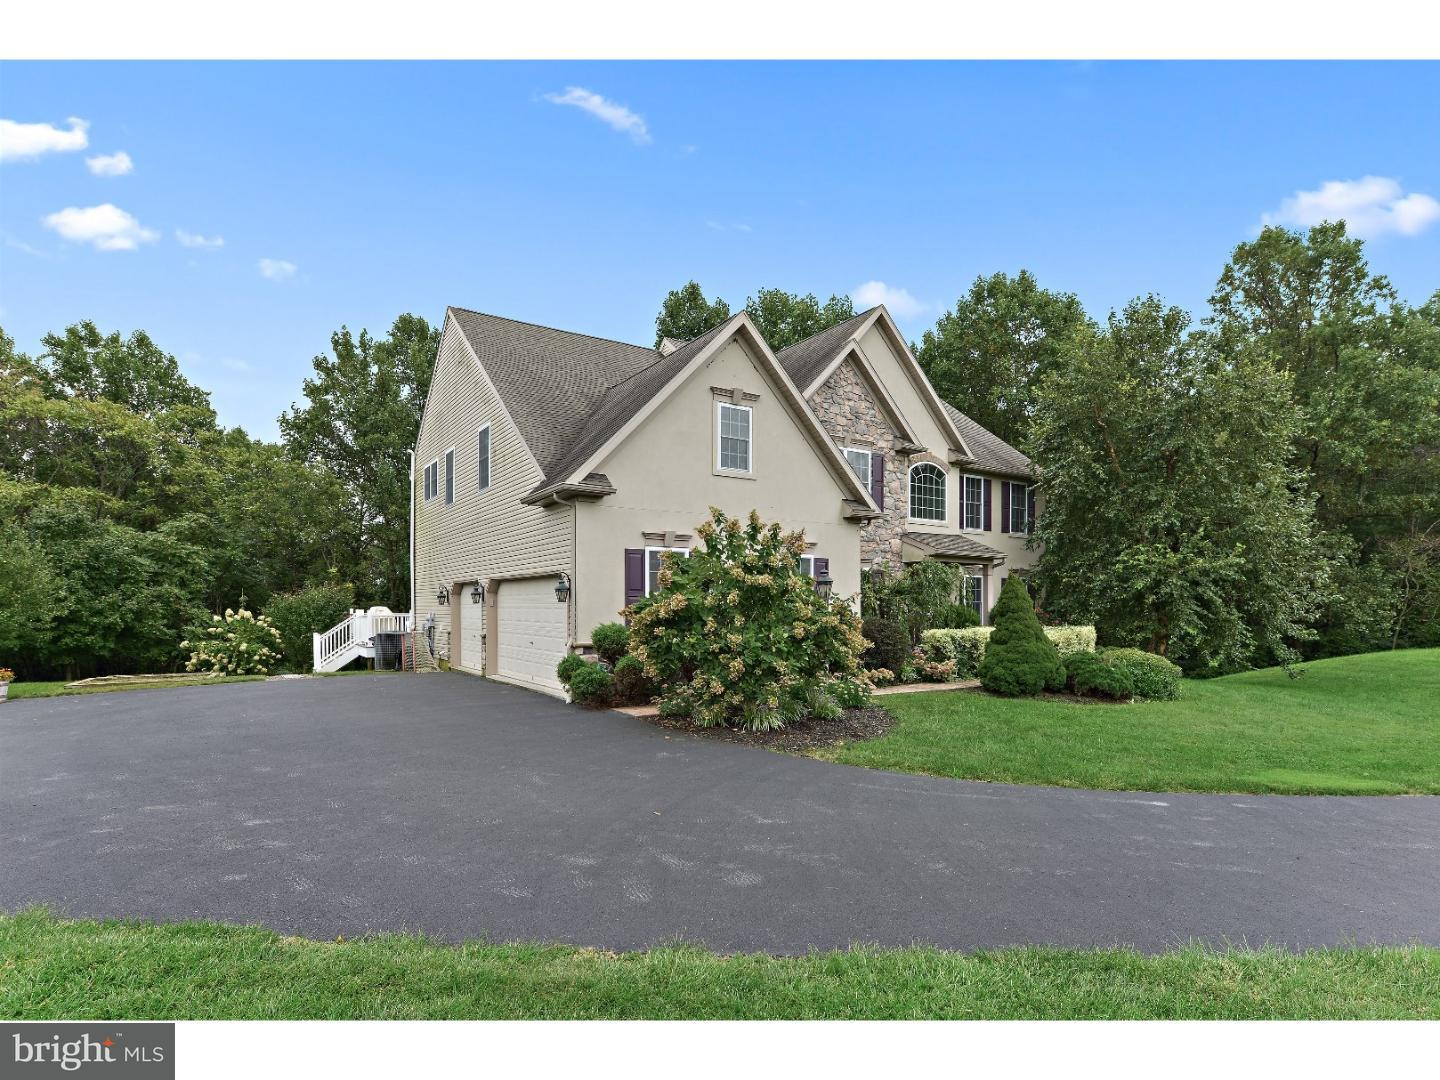 425 HARTMAN RD, READING - Listed at $485,000, READING